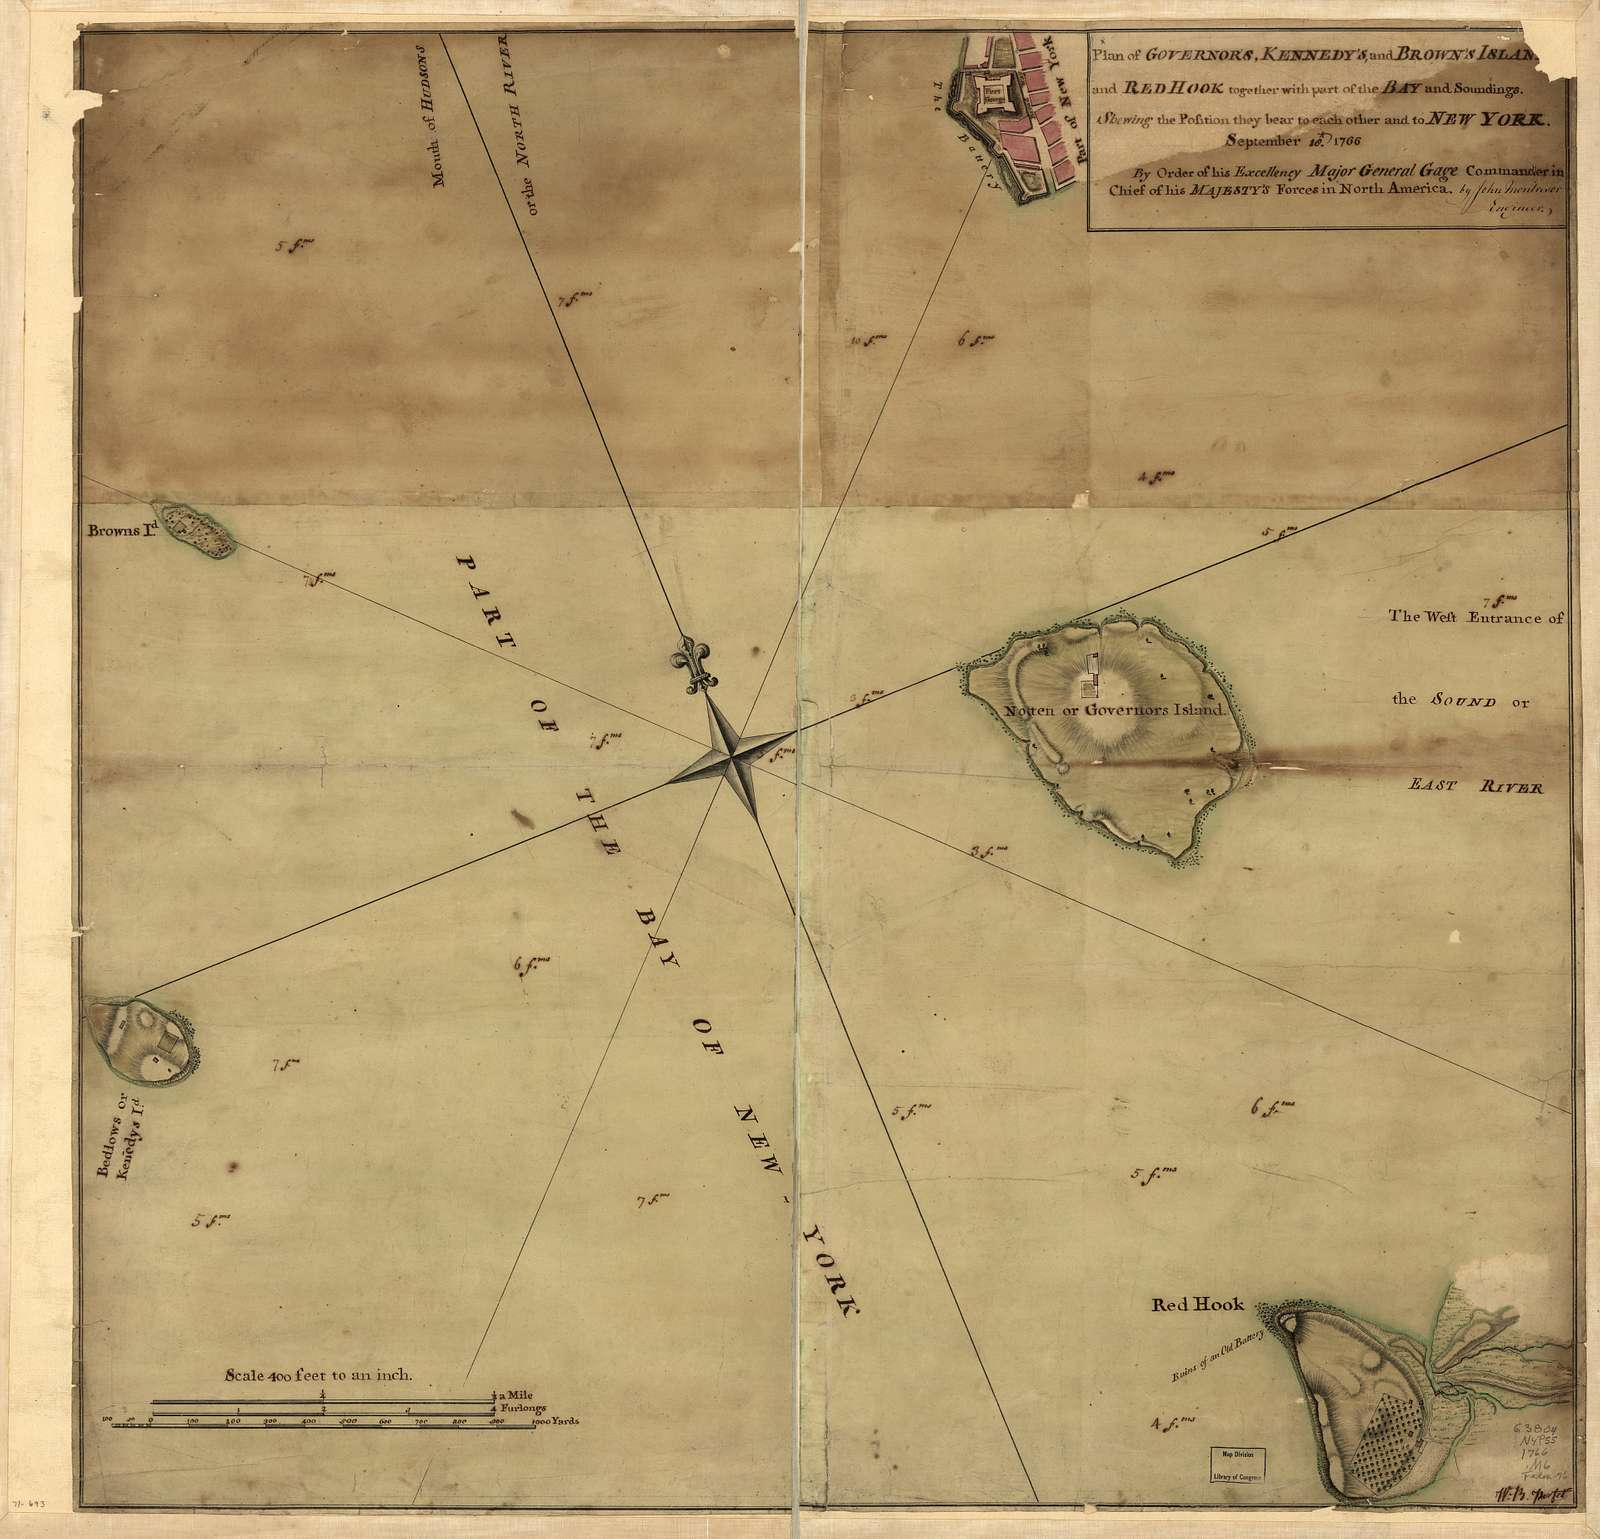 Plan of Governor's, Kennedy's, and Brown's Islan[ds] and Red Hook together with part of the Bay and soundings, shewing the position they bear to each other and to New York, September 18th. 1766. By order of His Excellency Major General Gage, Commander in Chief of His Majesty's forces in North America.